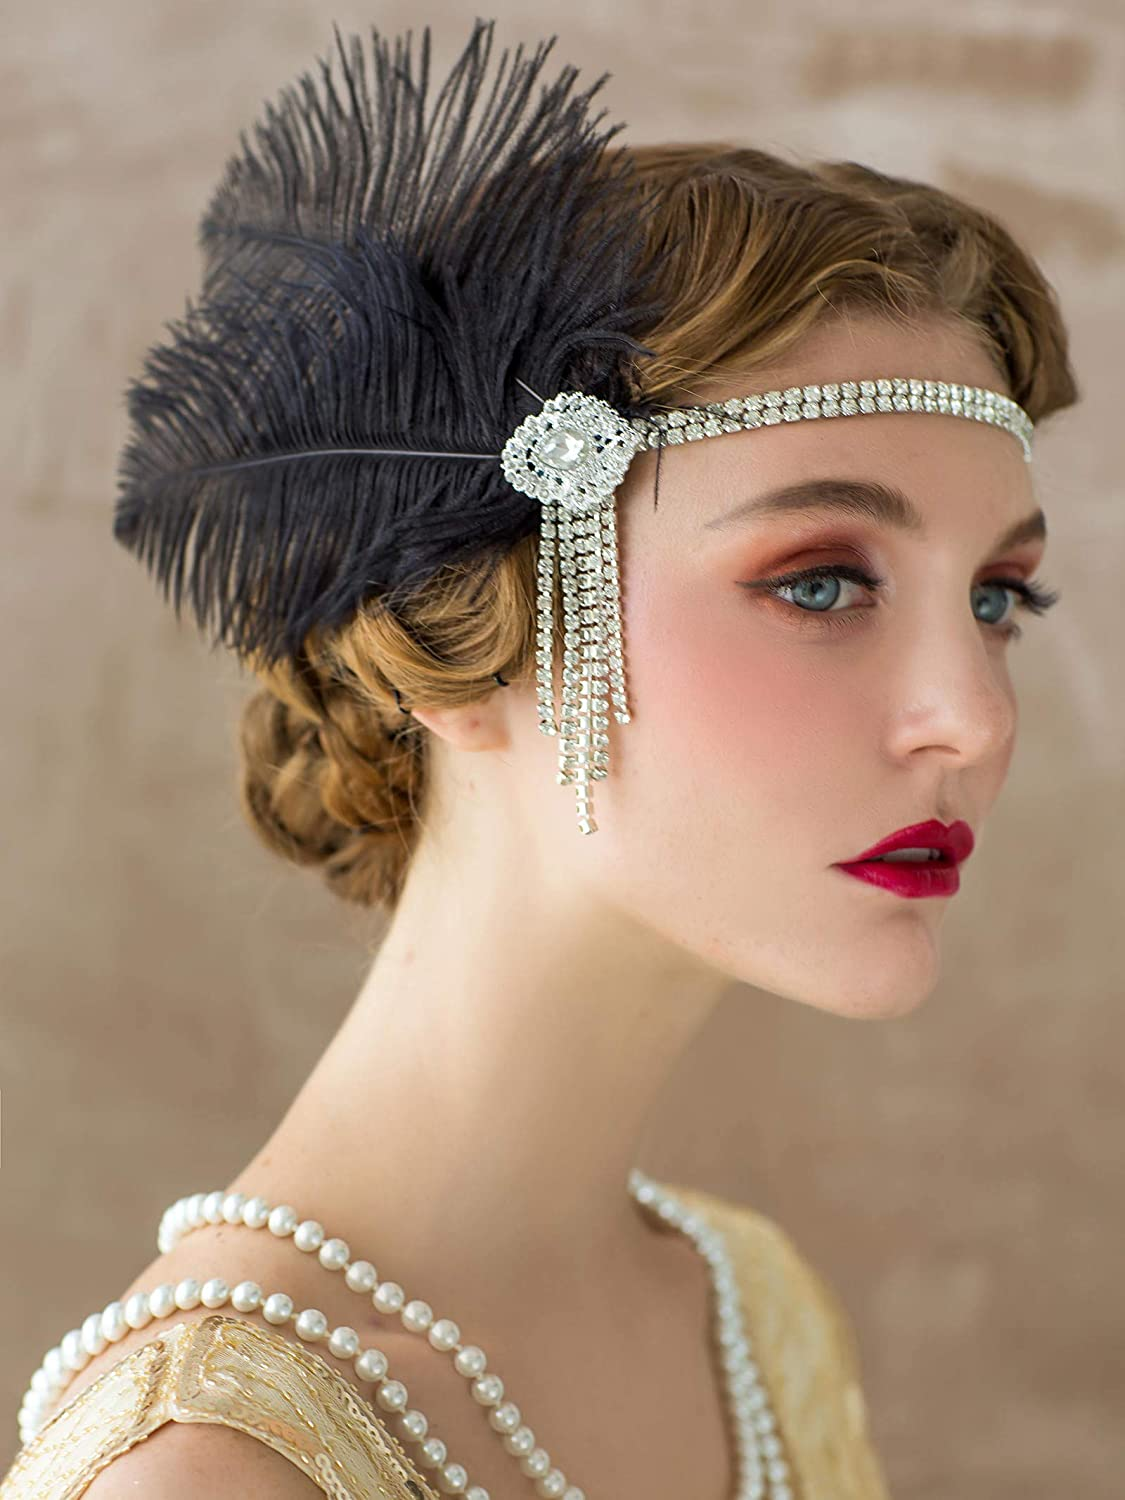 1920s Hairstyles History- Long Hair to Bobbed Hair SWEETV Flapper Headbands Womens 1920s Headpiece Great Gatsby Inspired Feather Headband Cocktail Party Rhinestone Hair Accessories for Women Black $13.99 AT vintagedancer.com